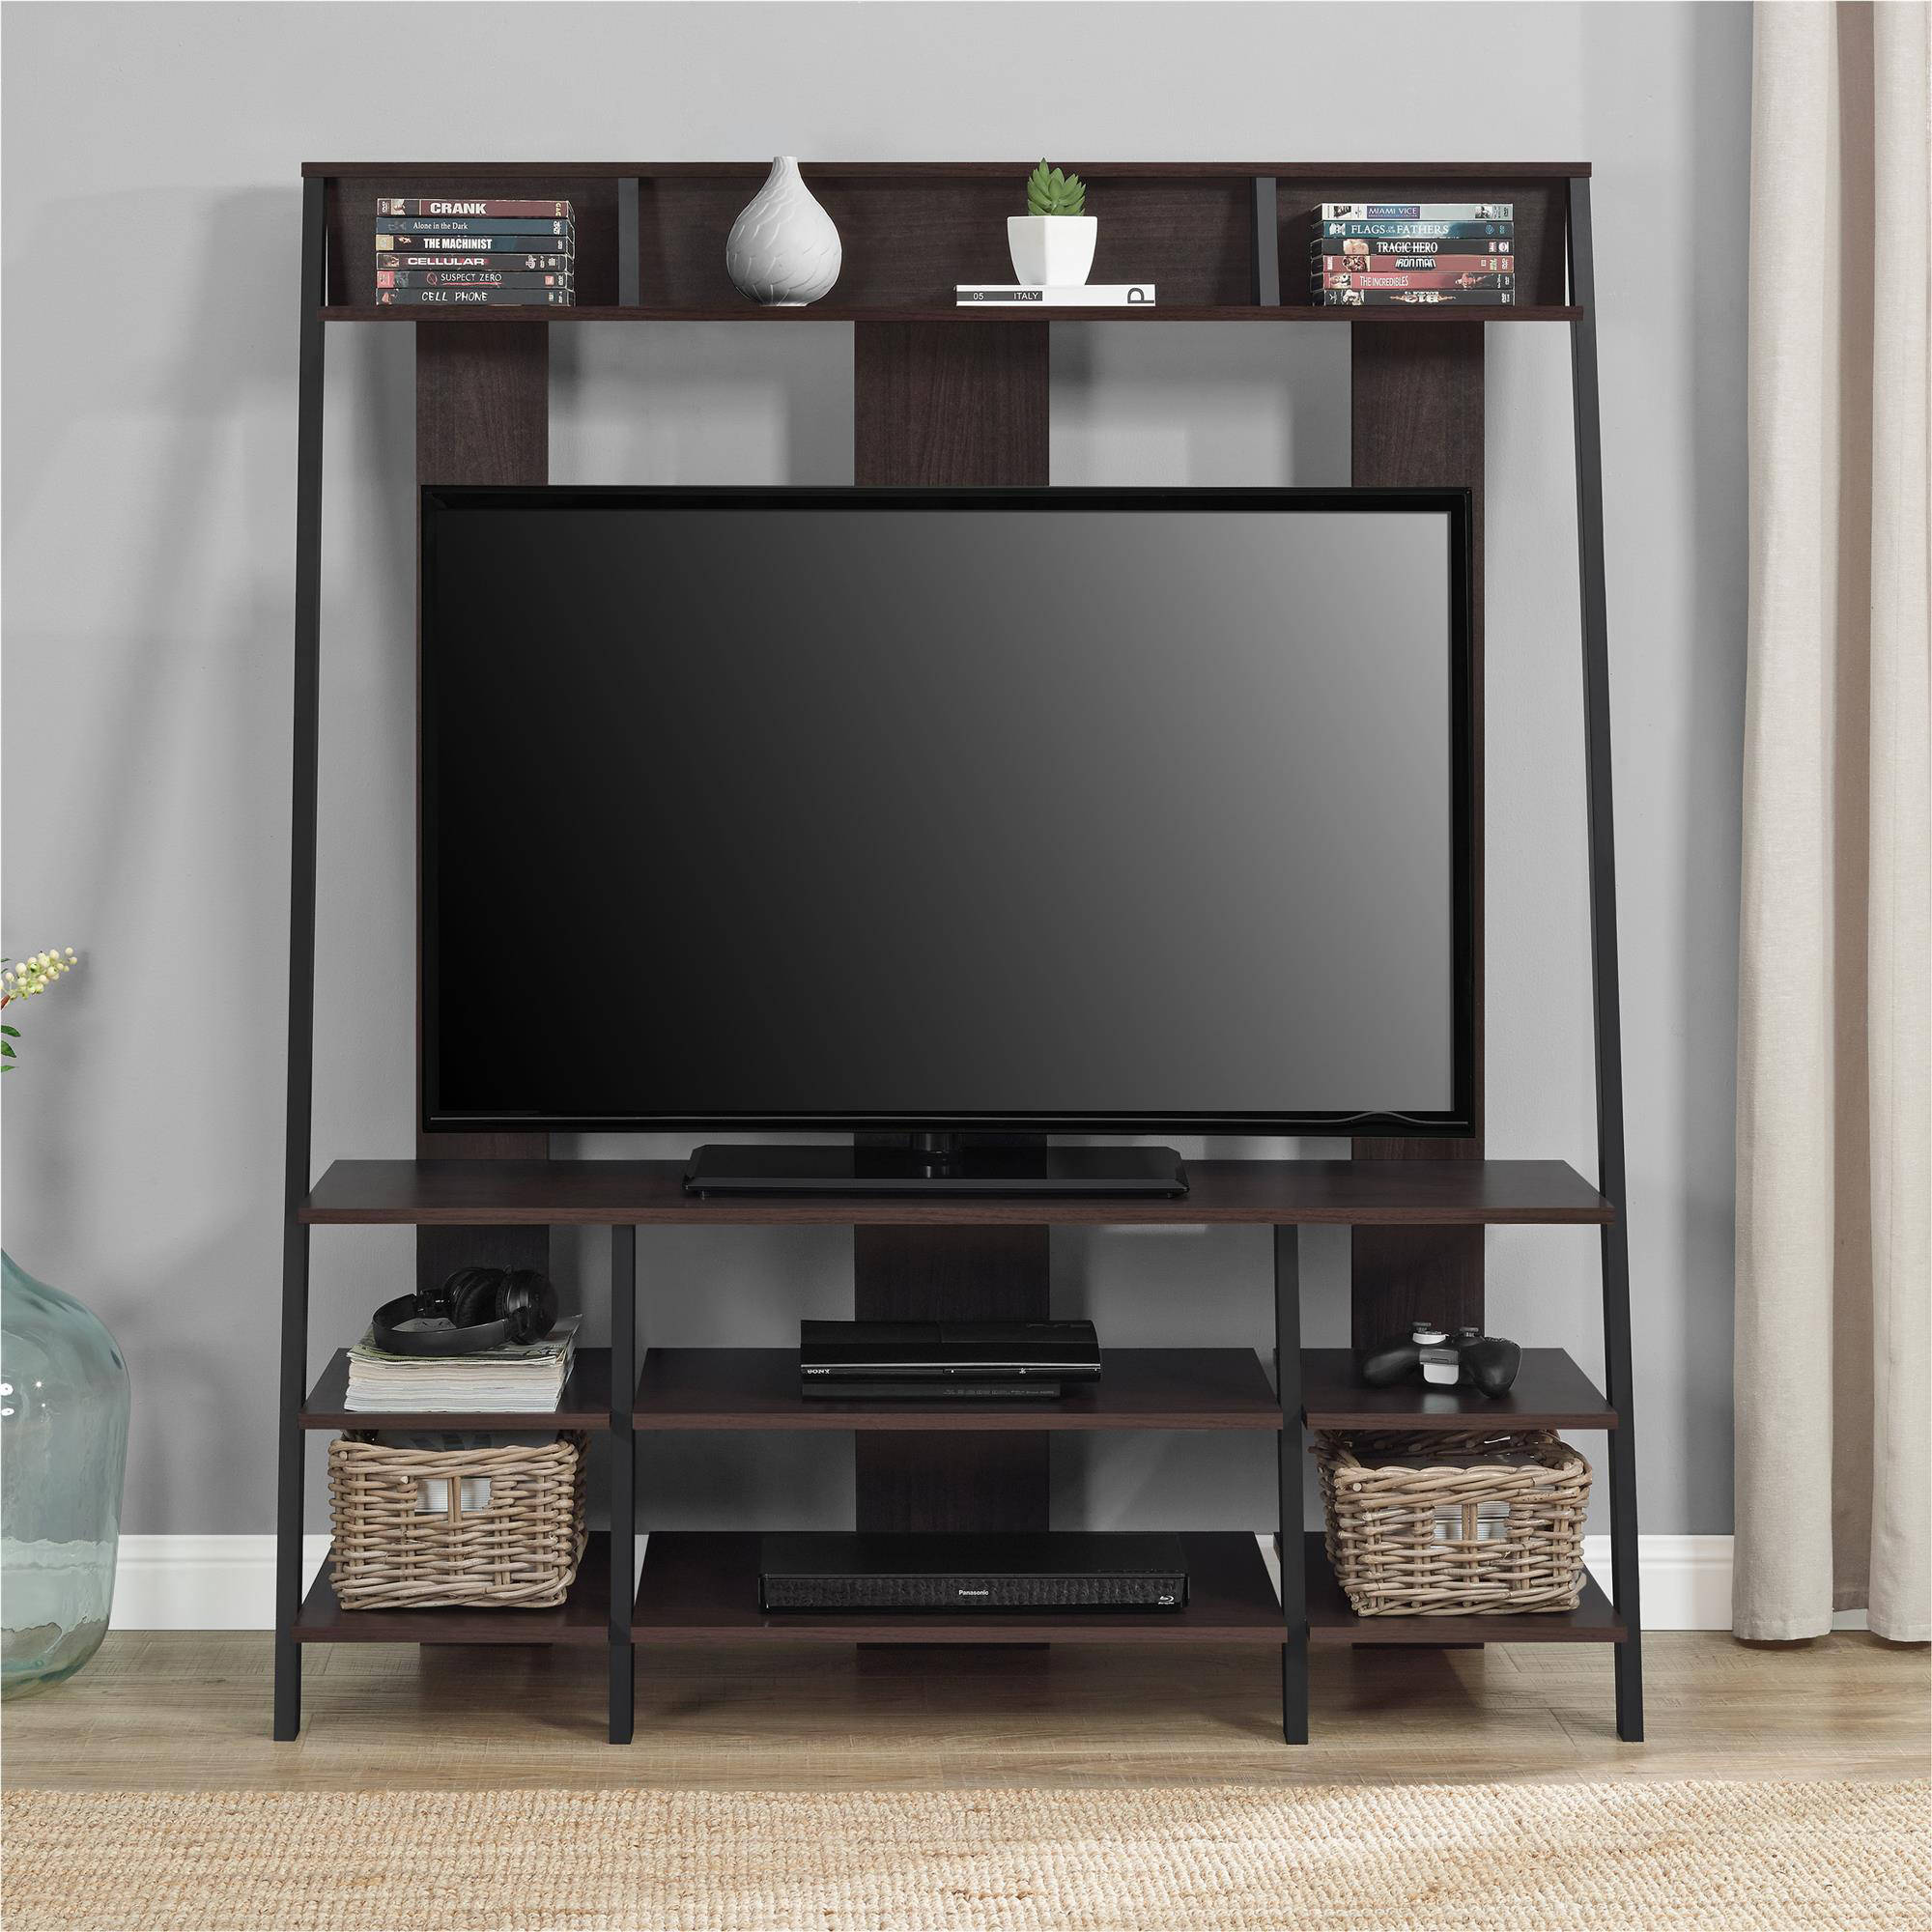 home gaming entertainment furniture scs billiards img cupboard and